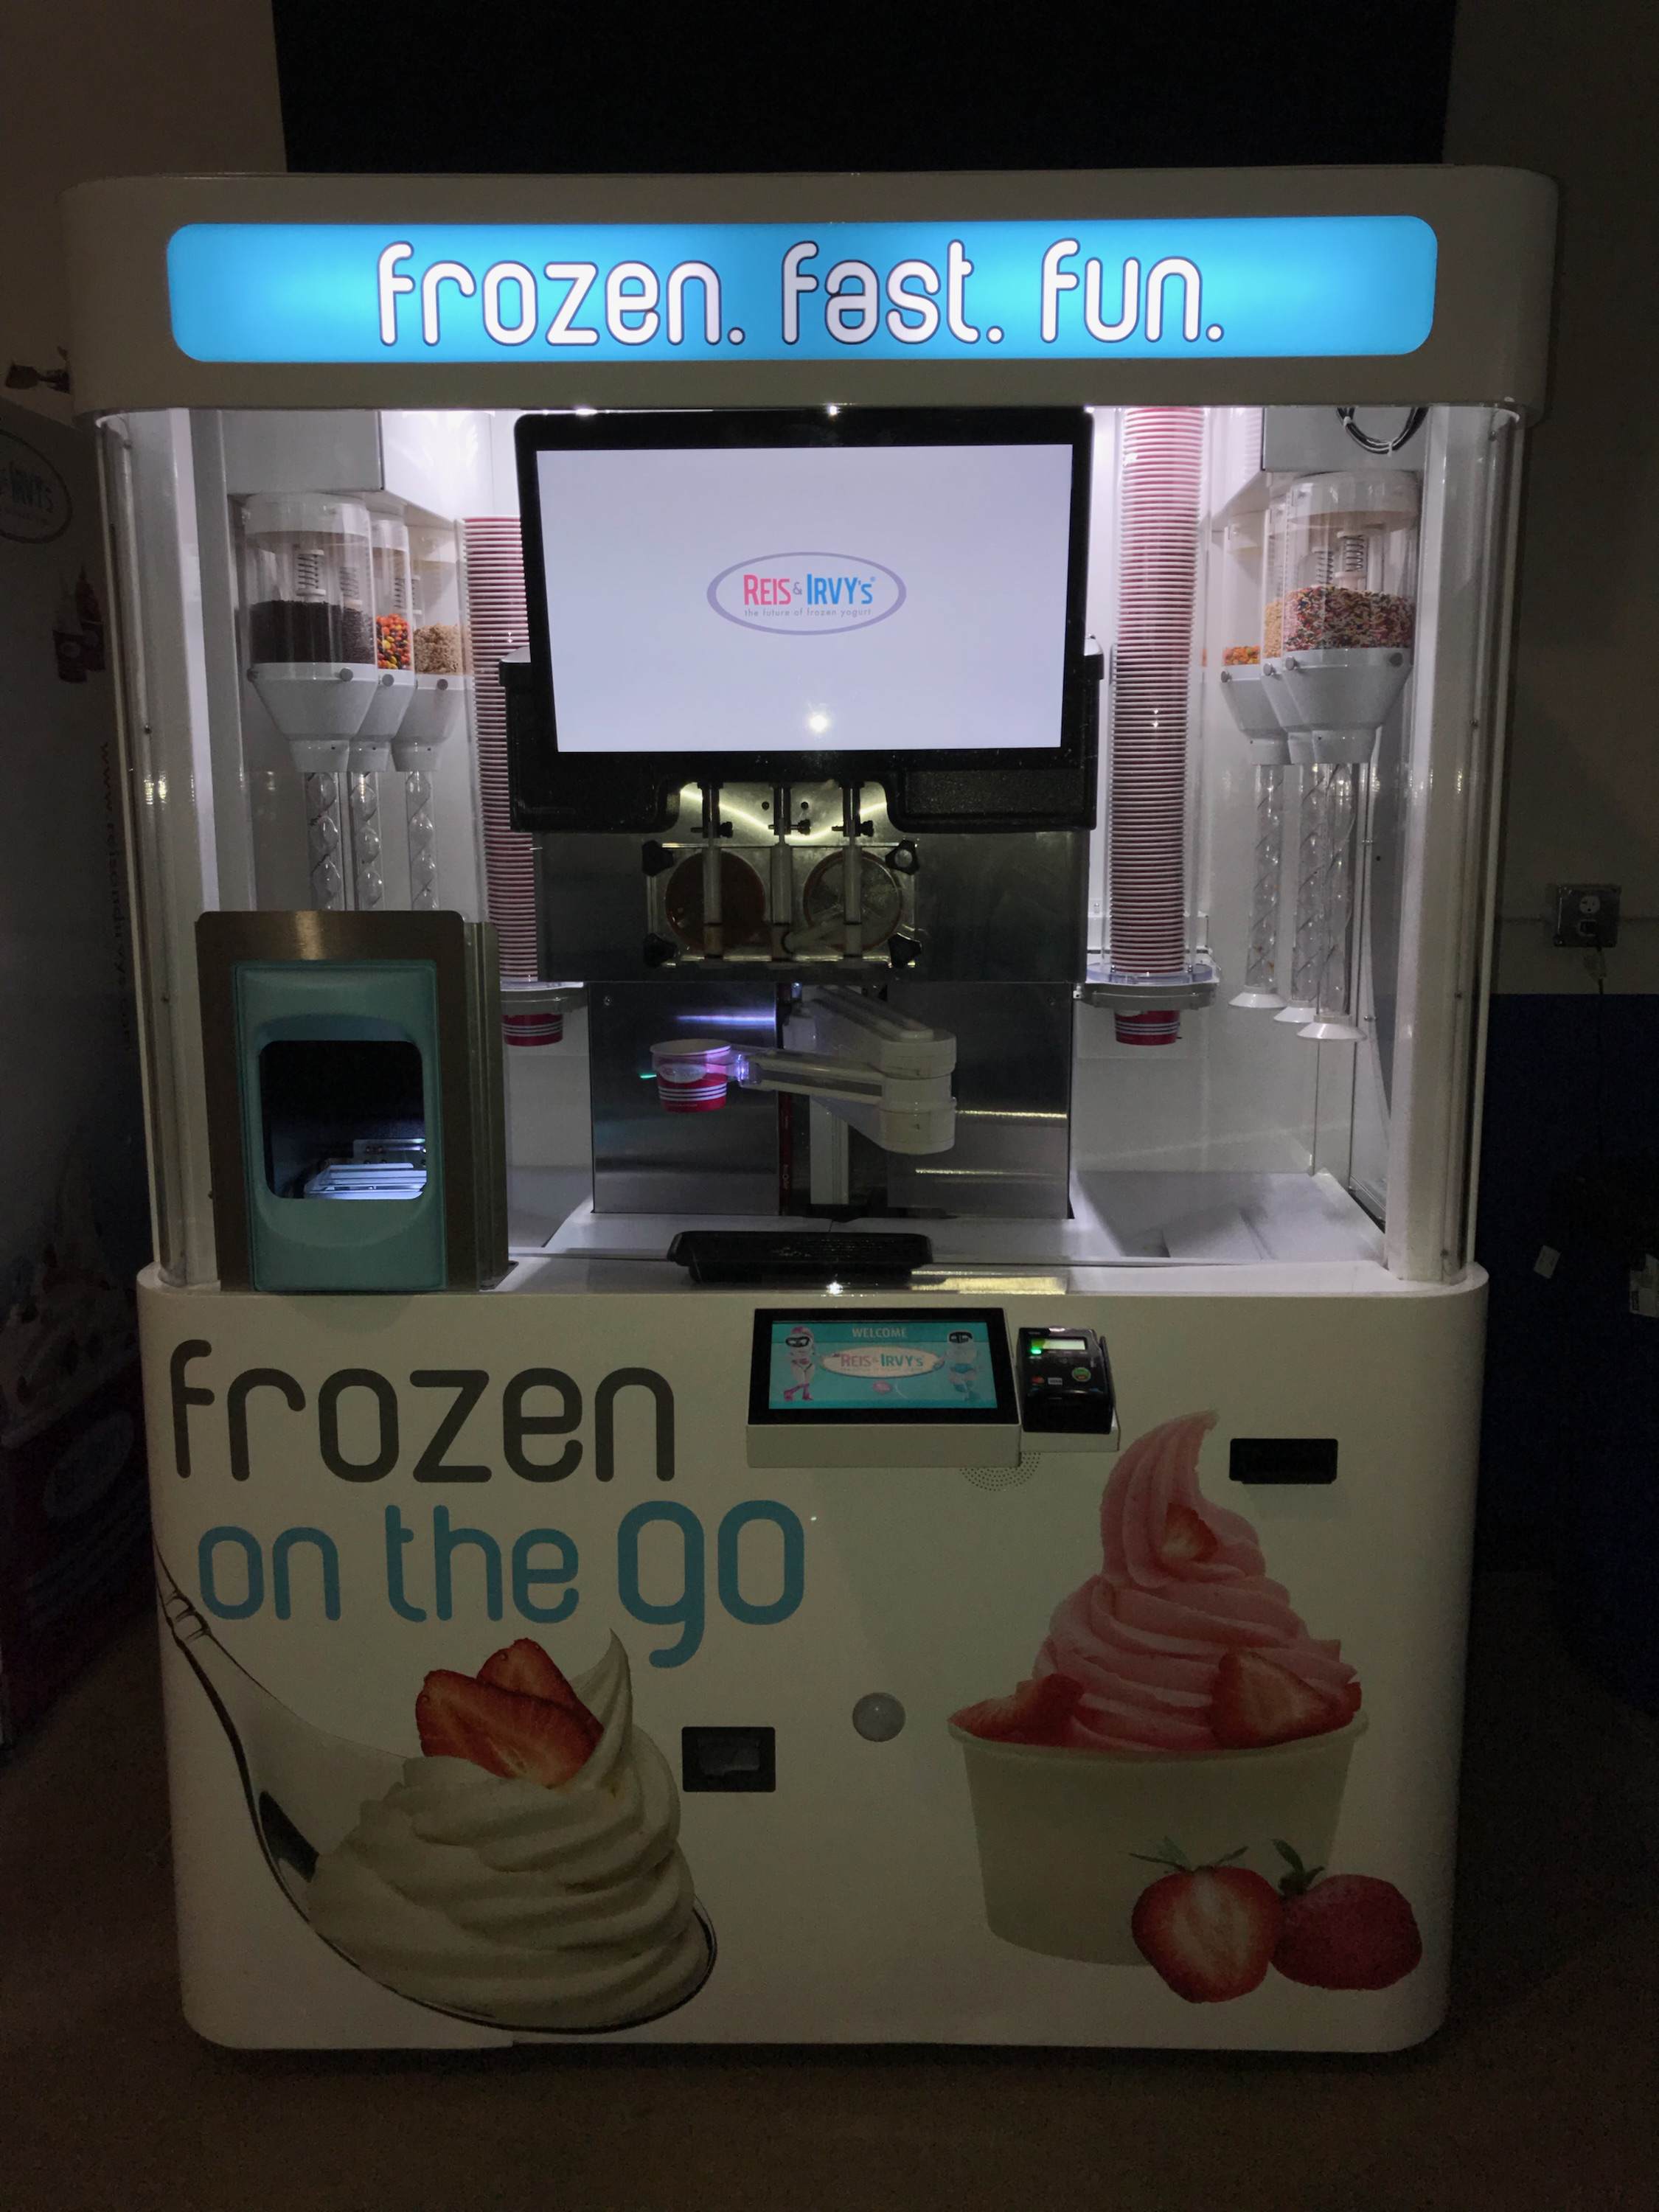 Master Franchise - Fastest Growing Frozen Yogurt Business - Work With Robots!